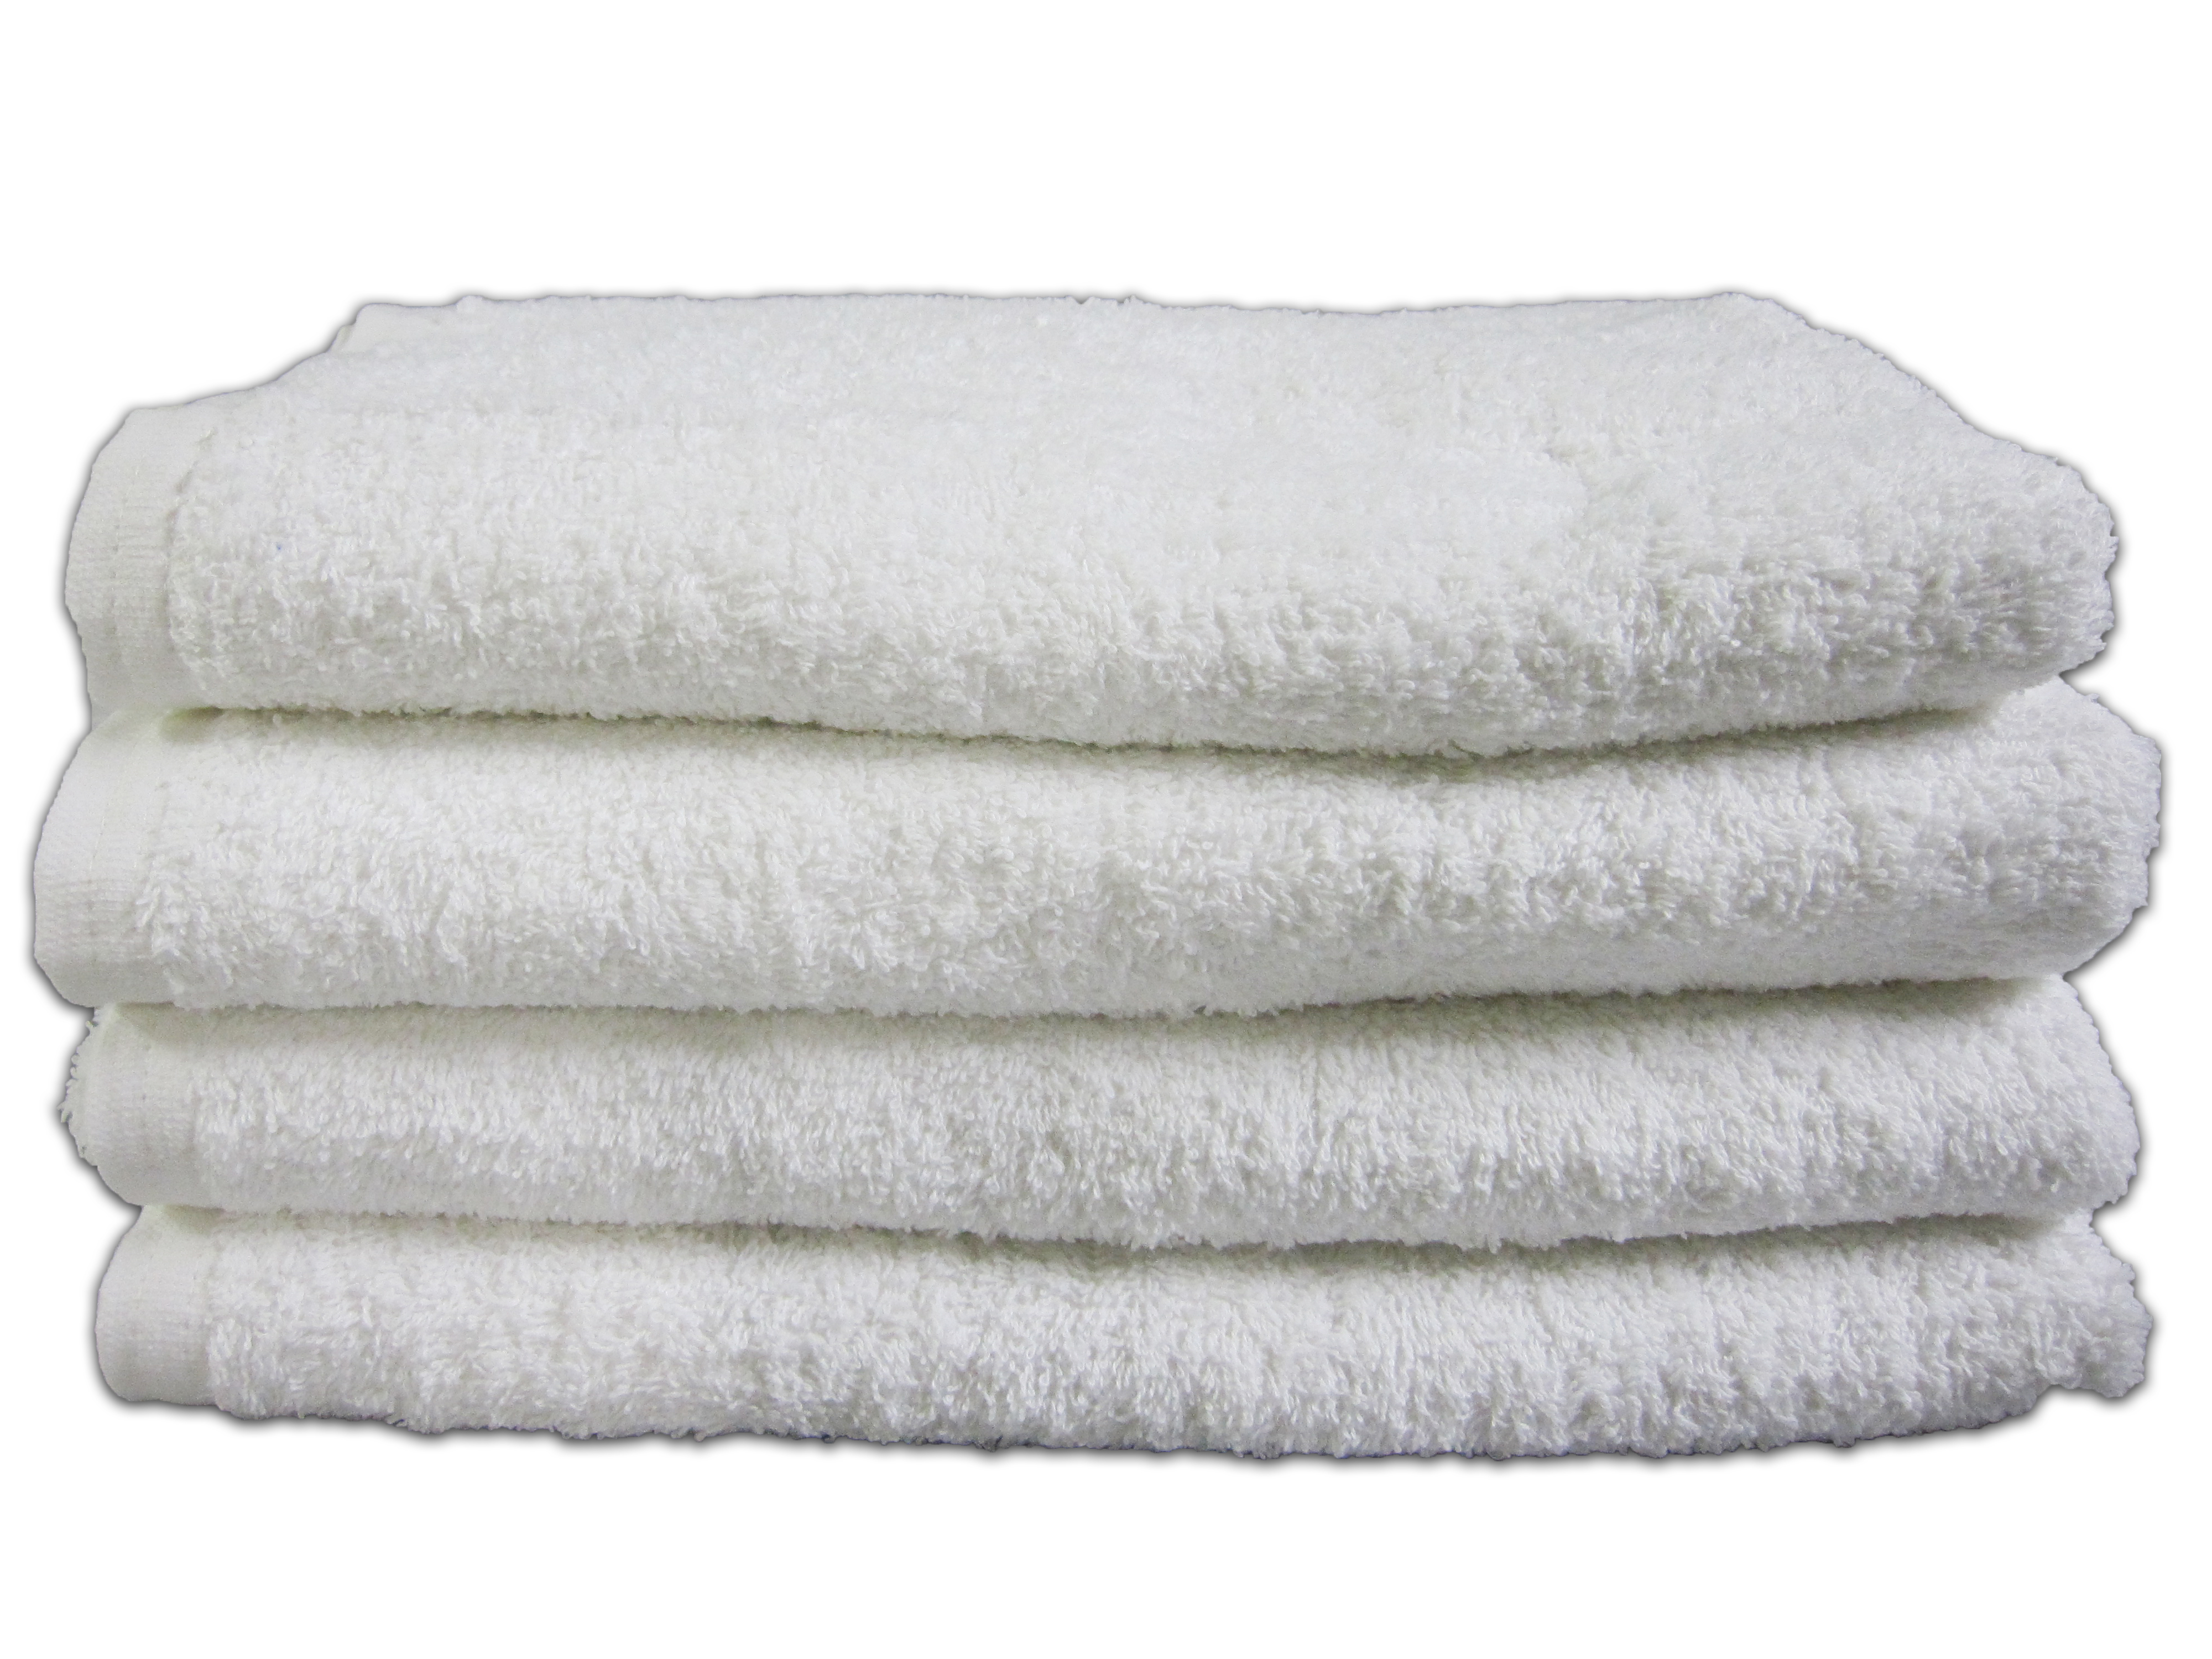 White Bath Towels Luxury Bath Towels View Original Updated On 10 17 2014 At 11 10 58